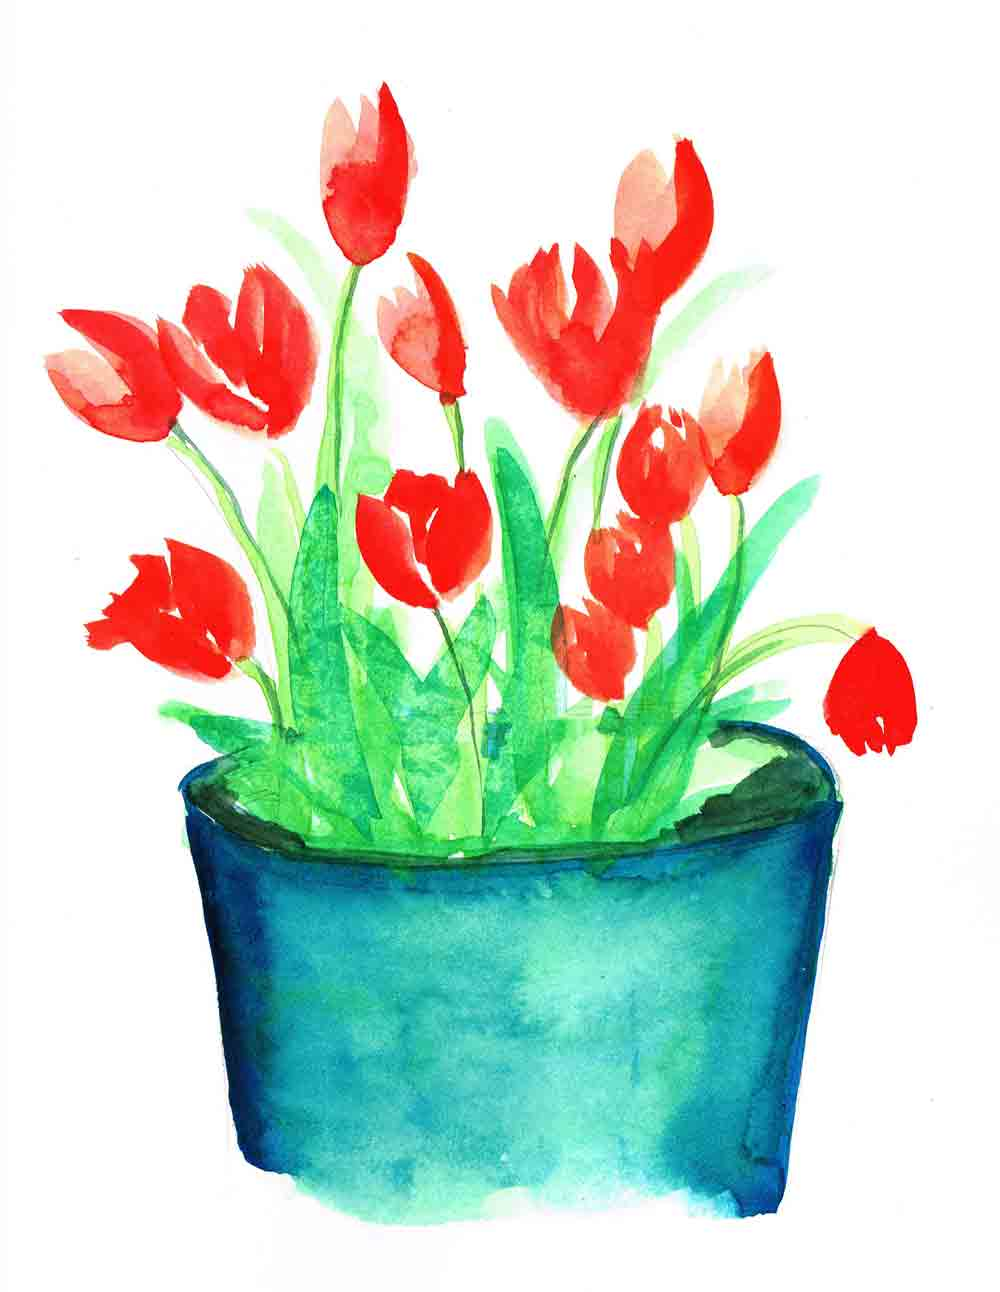 Tulips-Pot-Plants-in-pots-no-15-kw.jpg